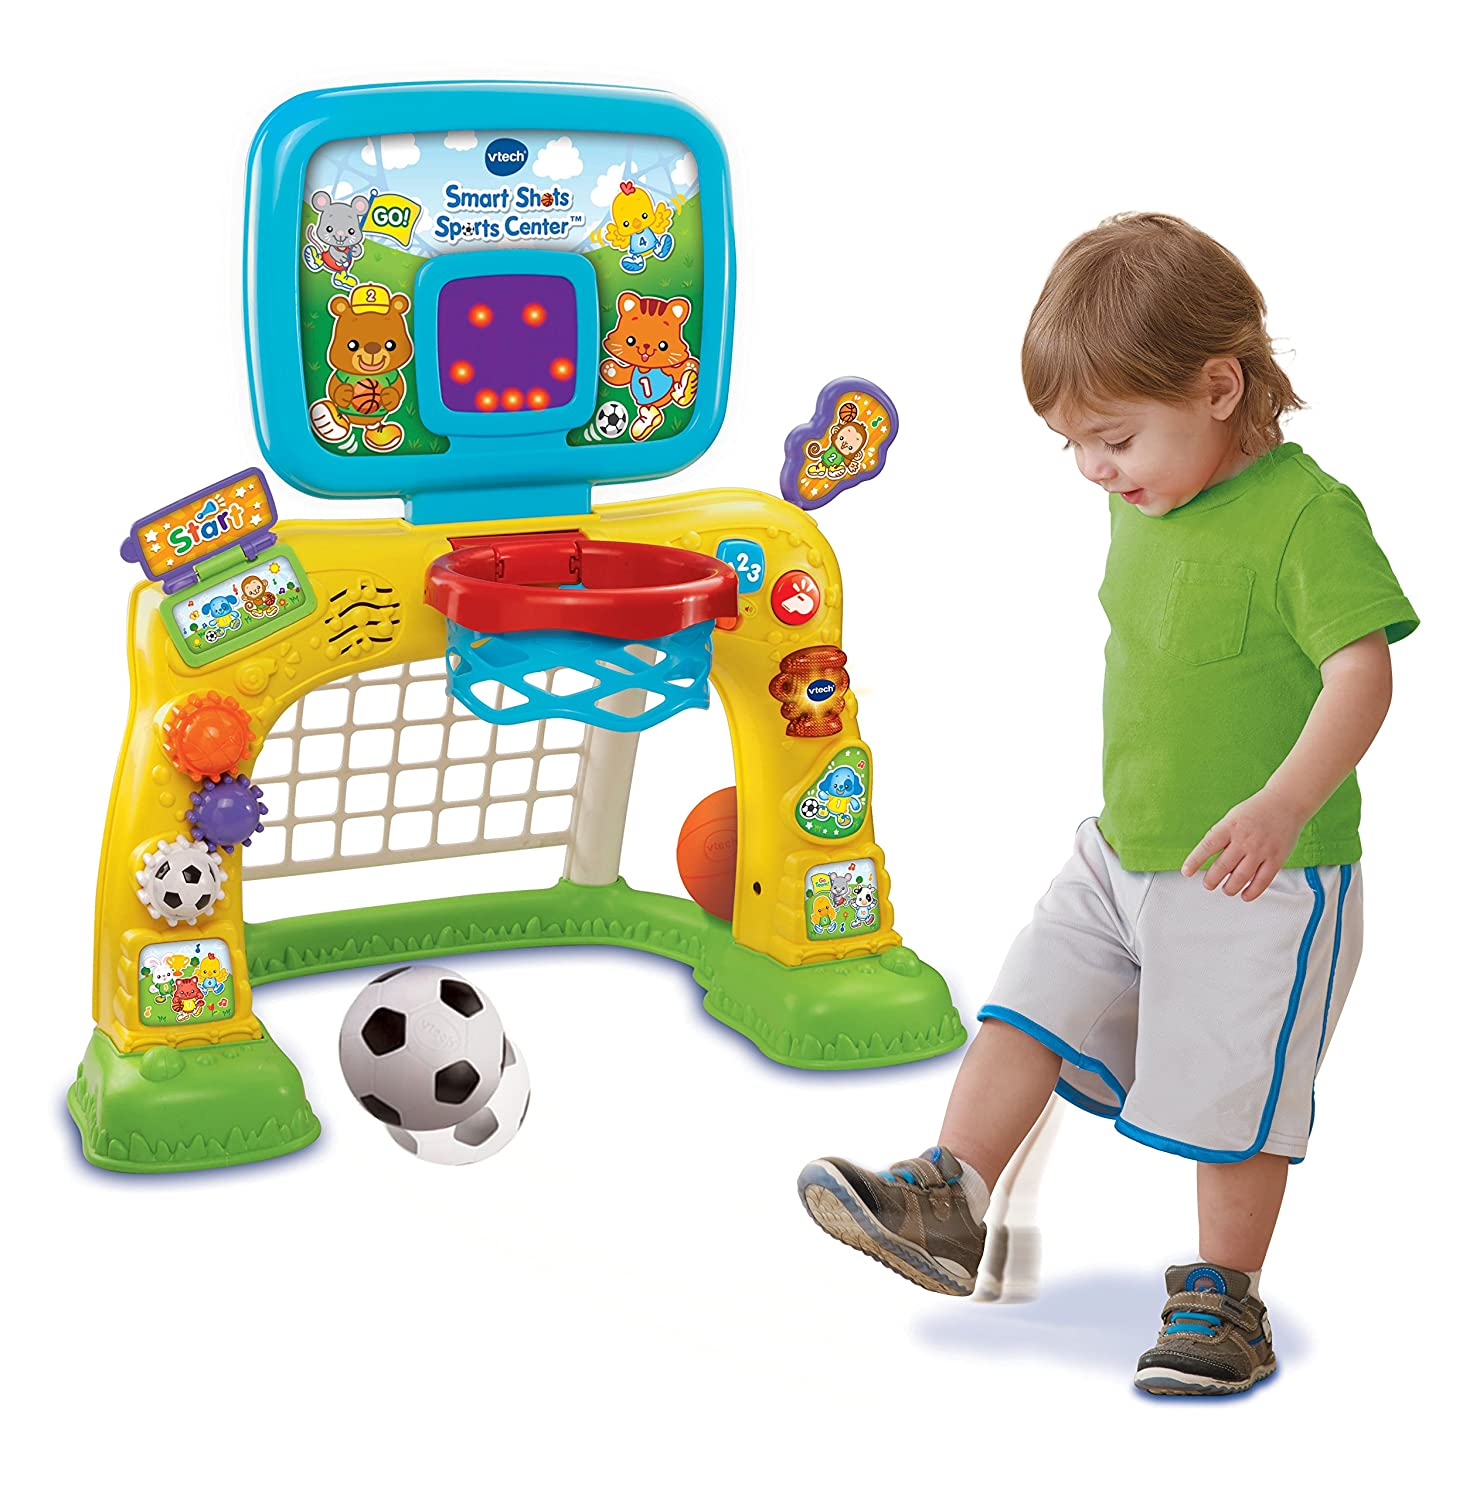 VTech Smart Shots Sports Center Frustration Free Packaging